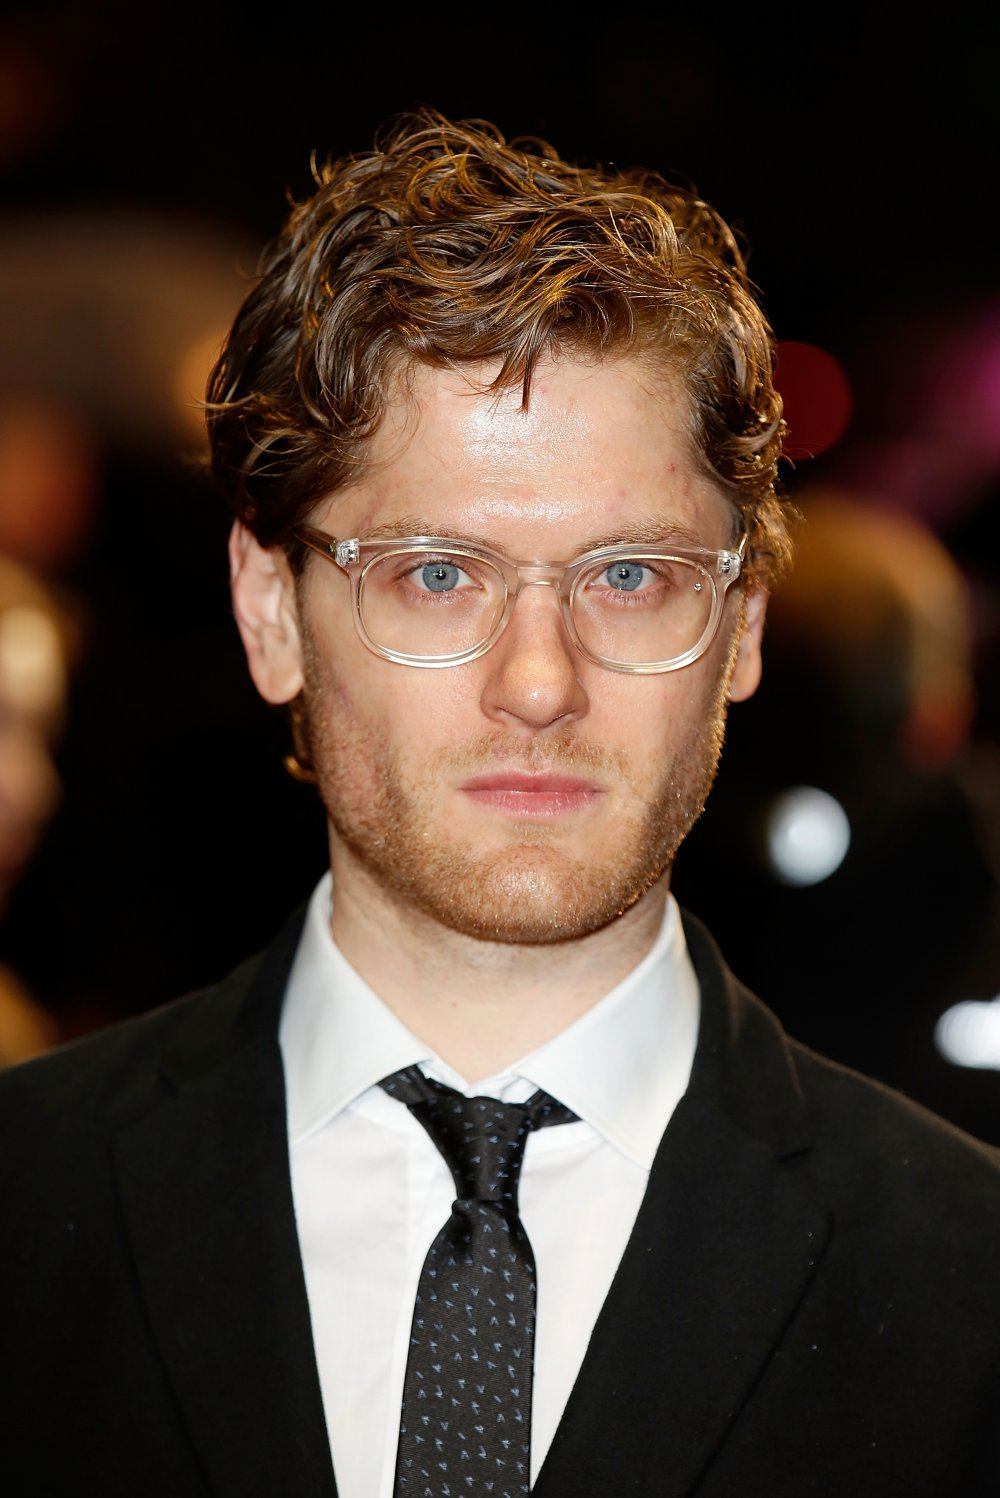 Kyle Soller on the red carpet for The Keeping Room at the 58th BFI London Film Festival